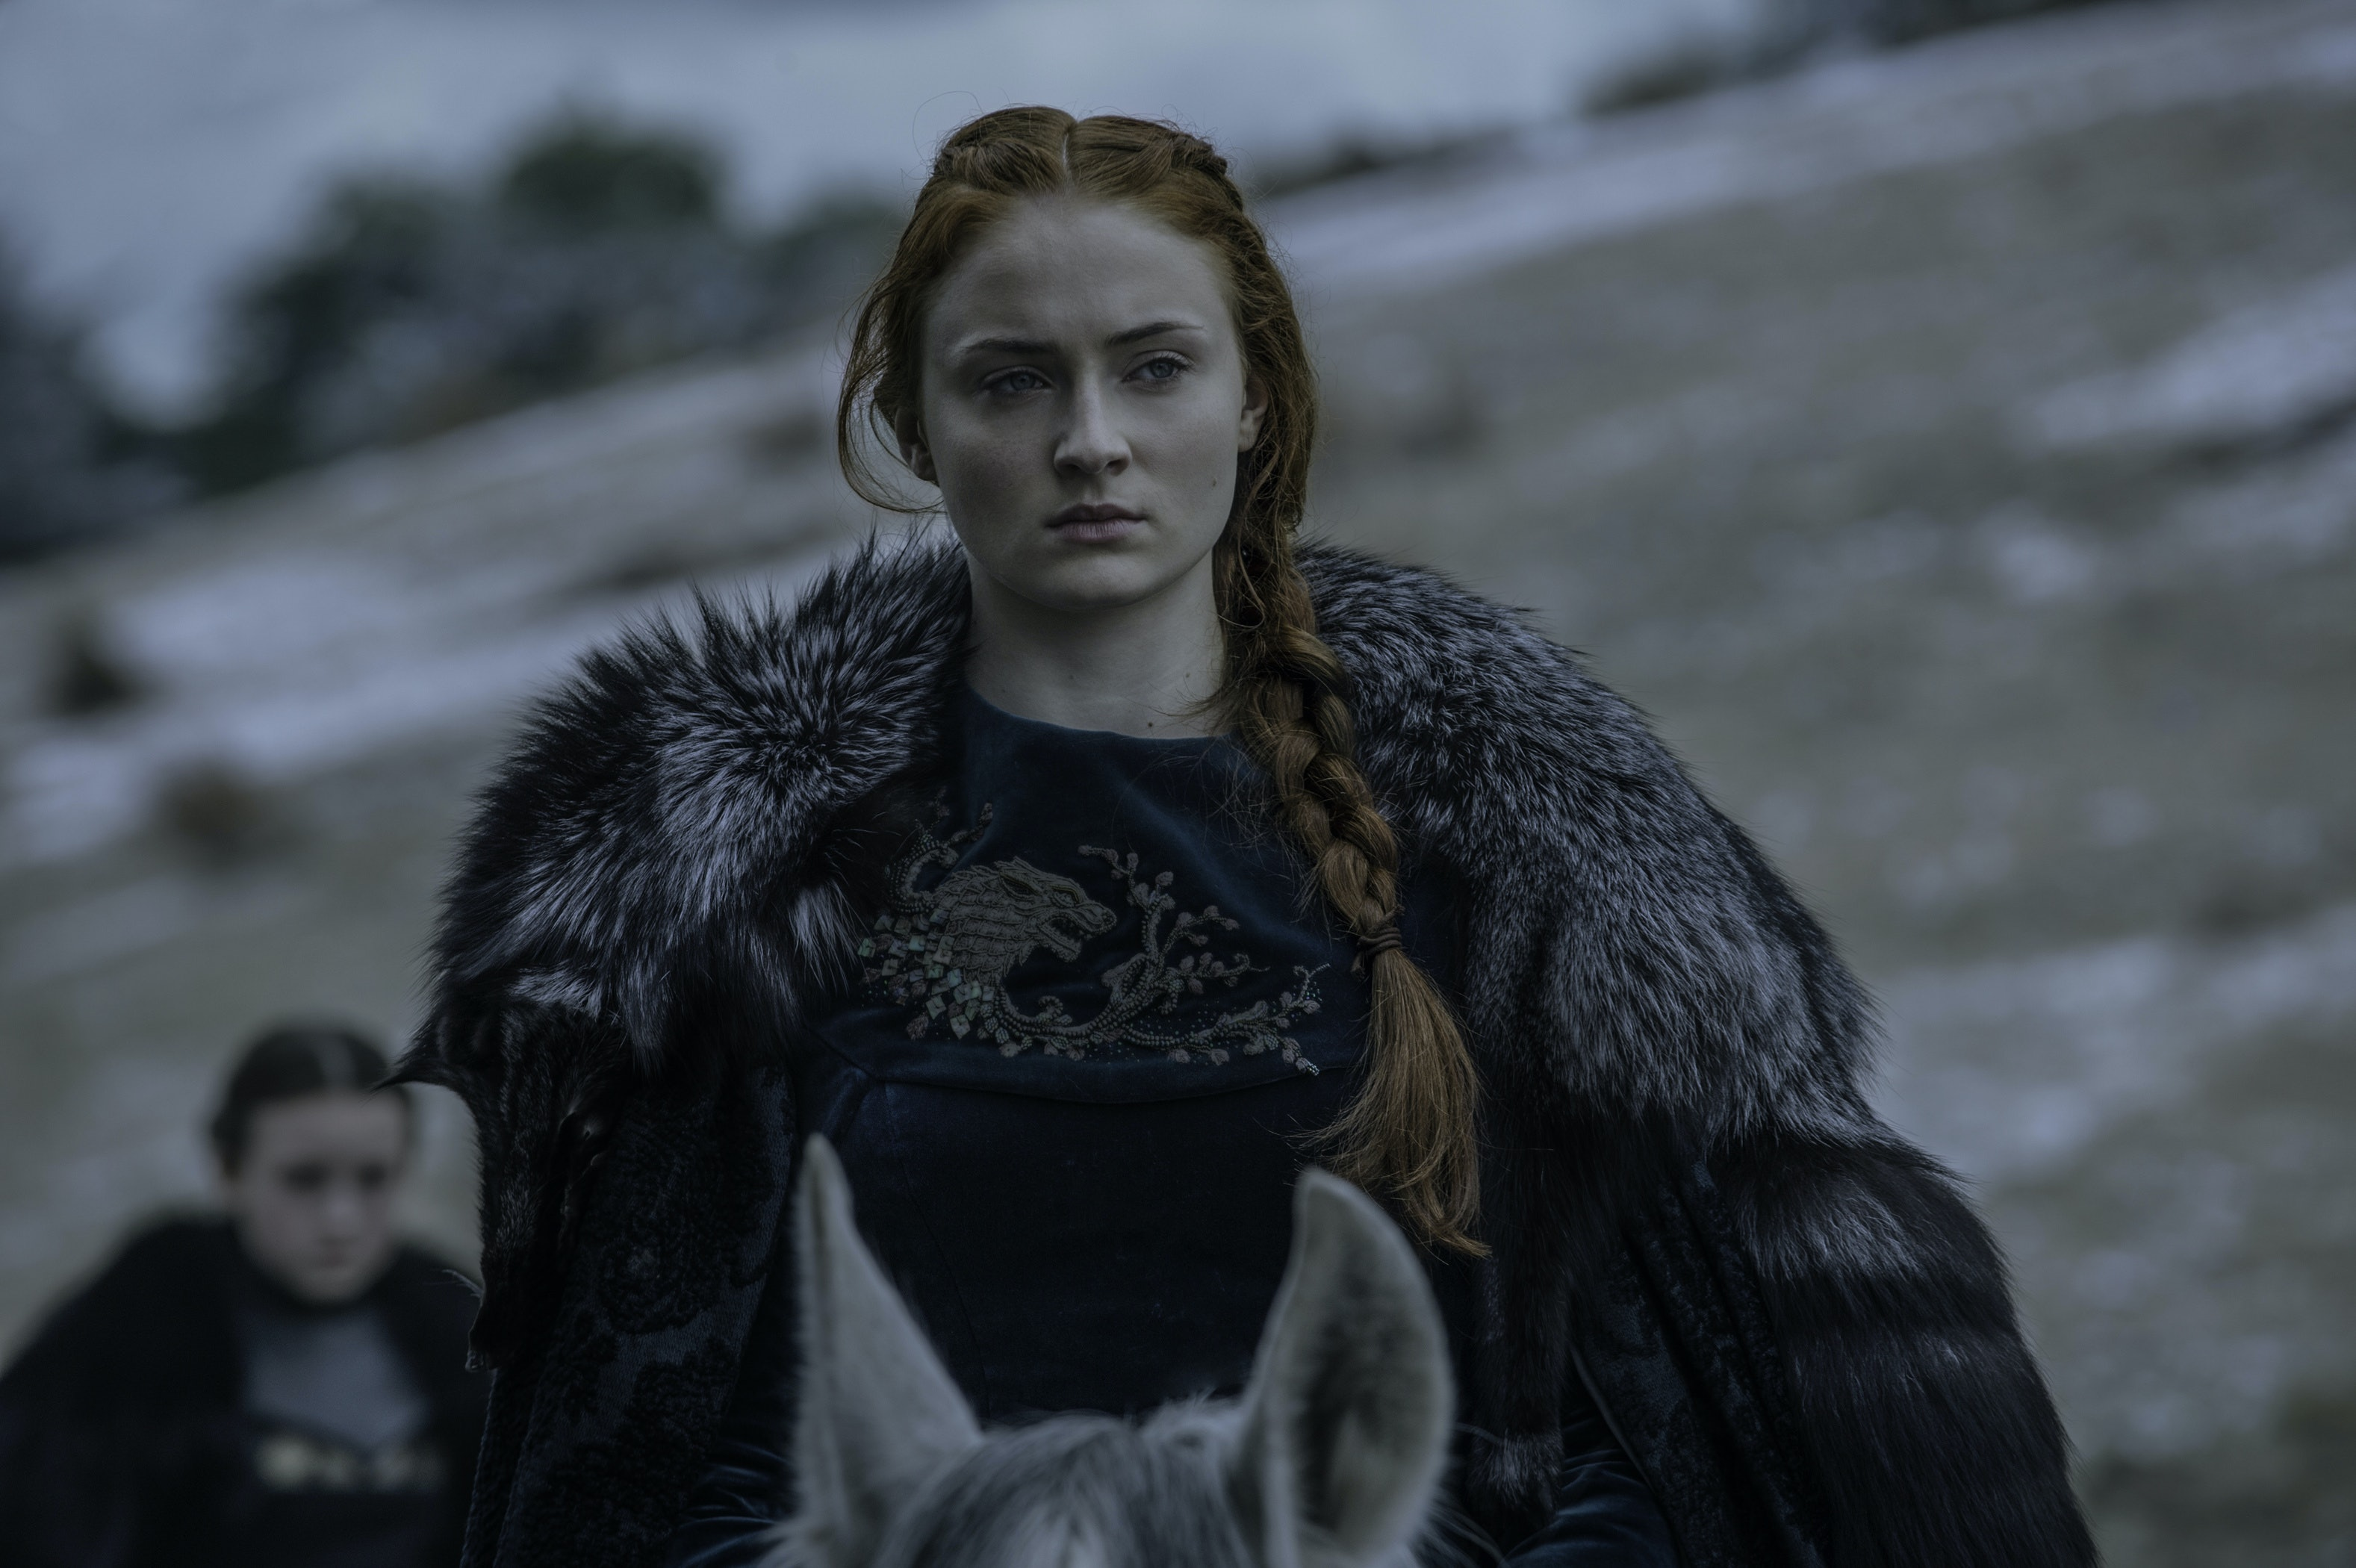 The Most Meaningful Game Of Thrones Scene 2016 Gave Sansa Power She Has Always Deserved